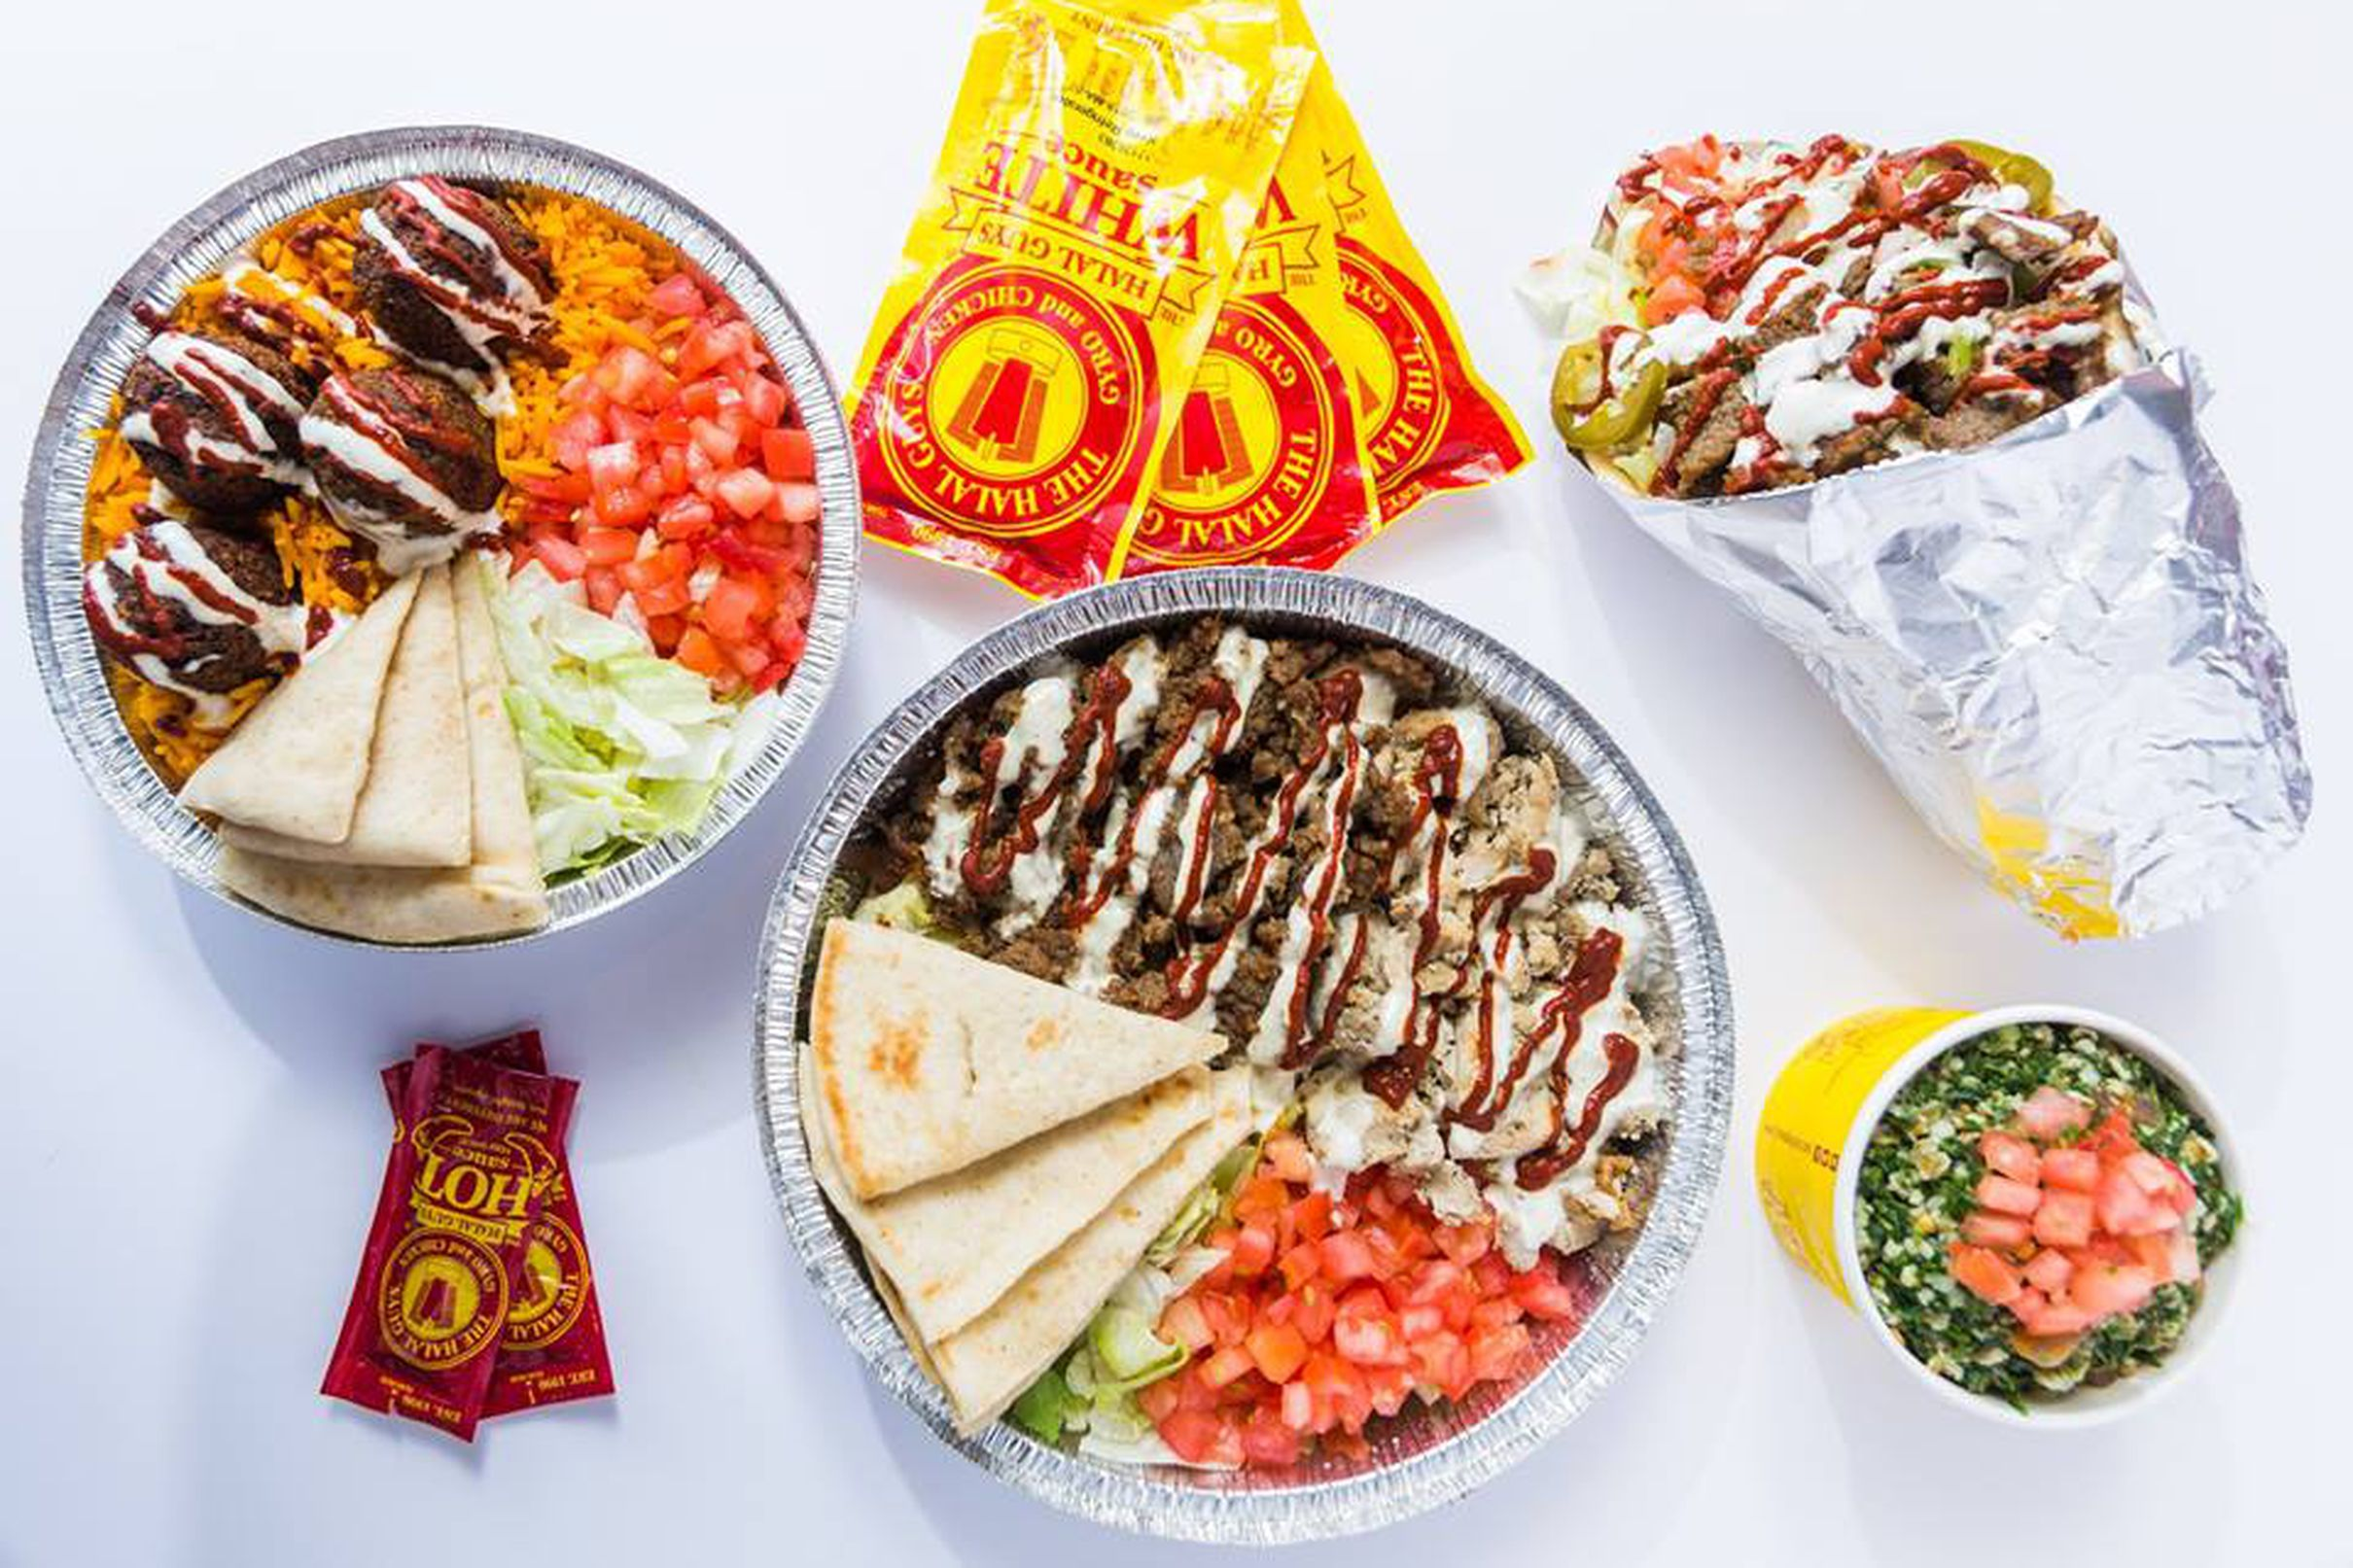 Tennessee S First Halal Guys Is Now Open In Nashville Food Halal Middle Eastern Recipes